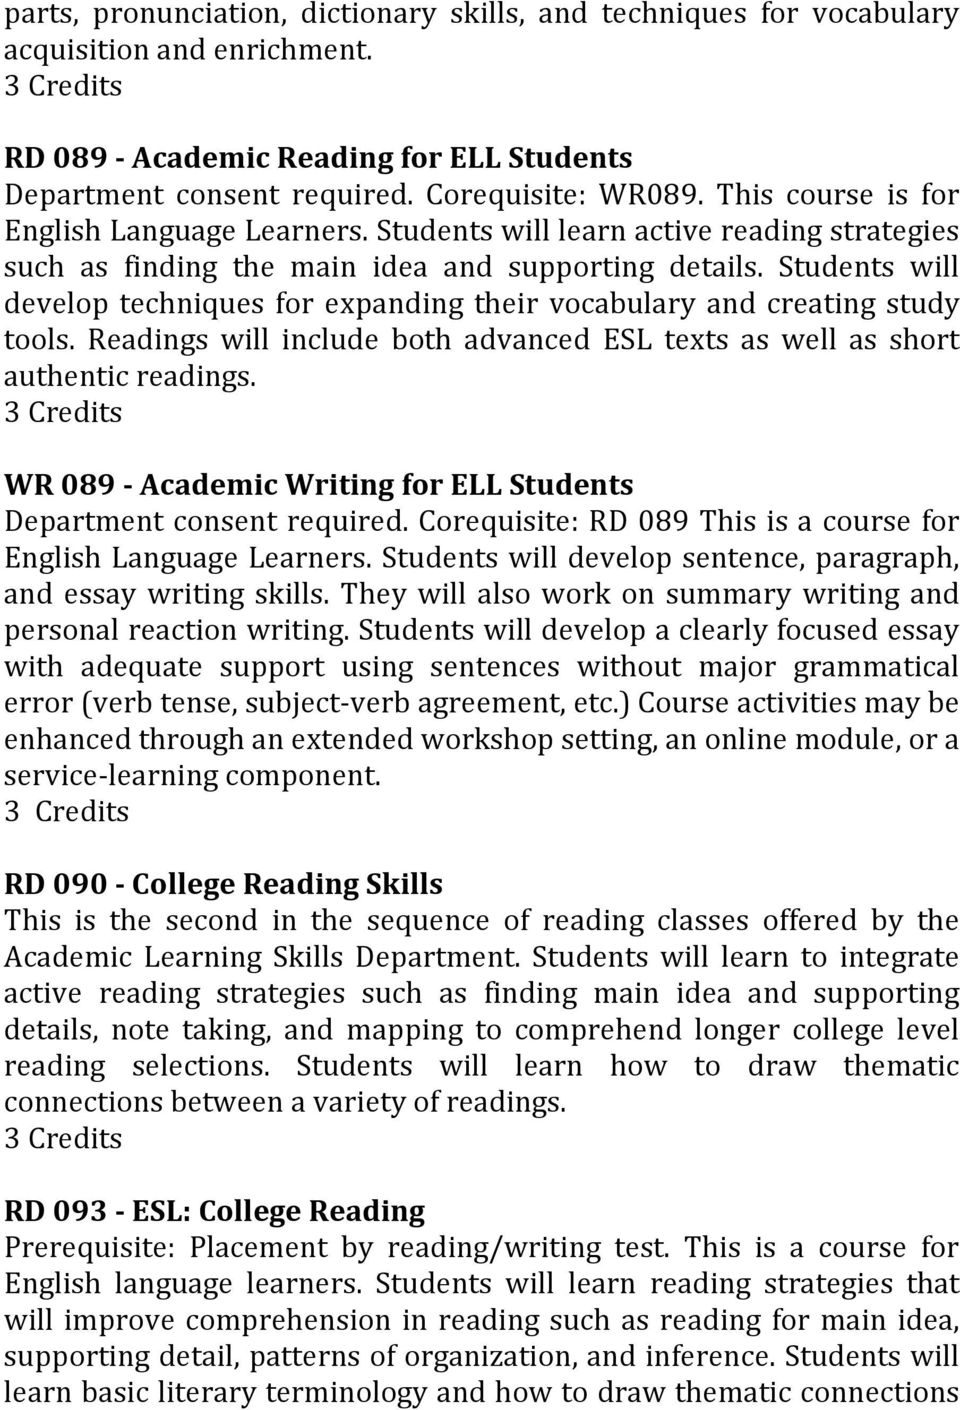 Students will develop techniques for expanding their vocabulary and creating study tools. Readings will include both advanced ESL texts as well as short authentic readings.